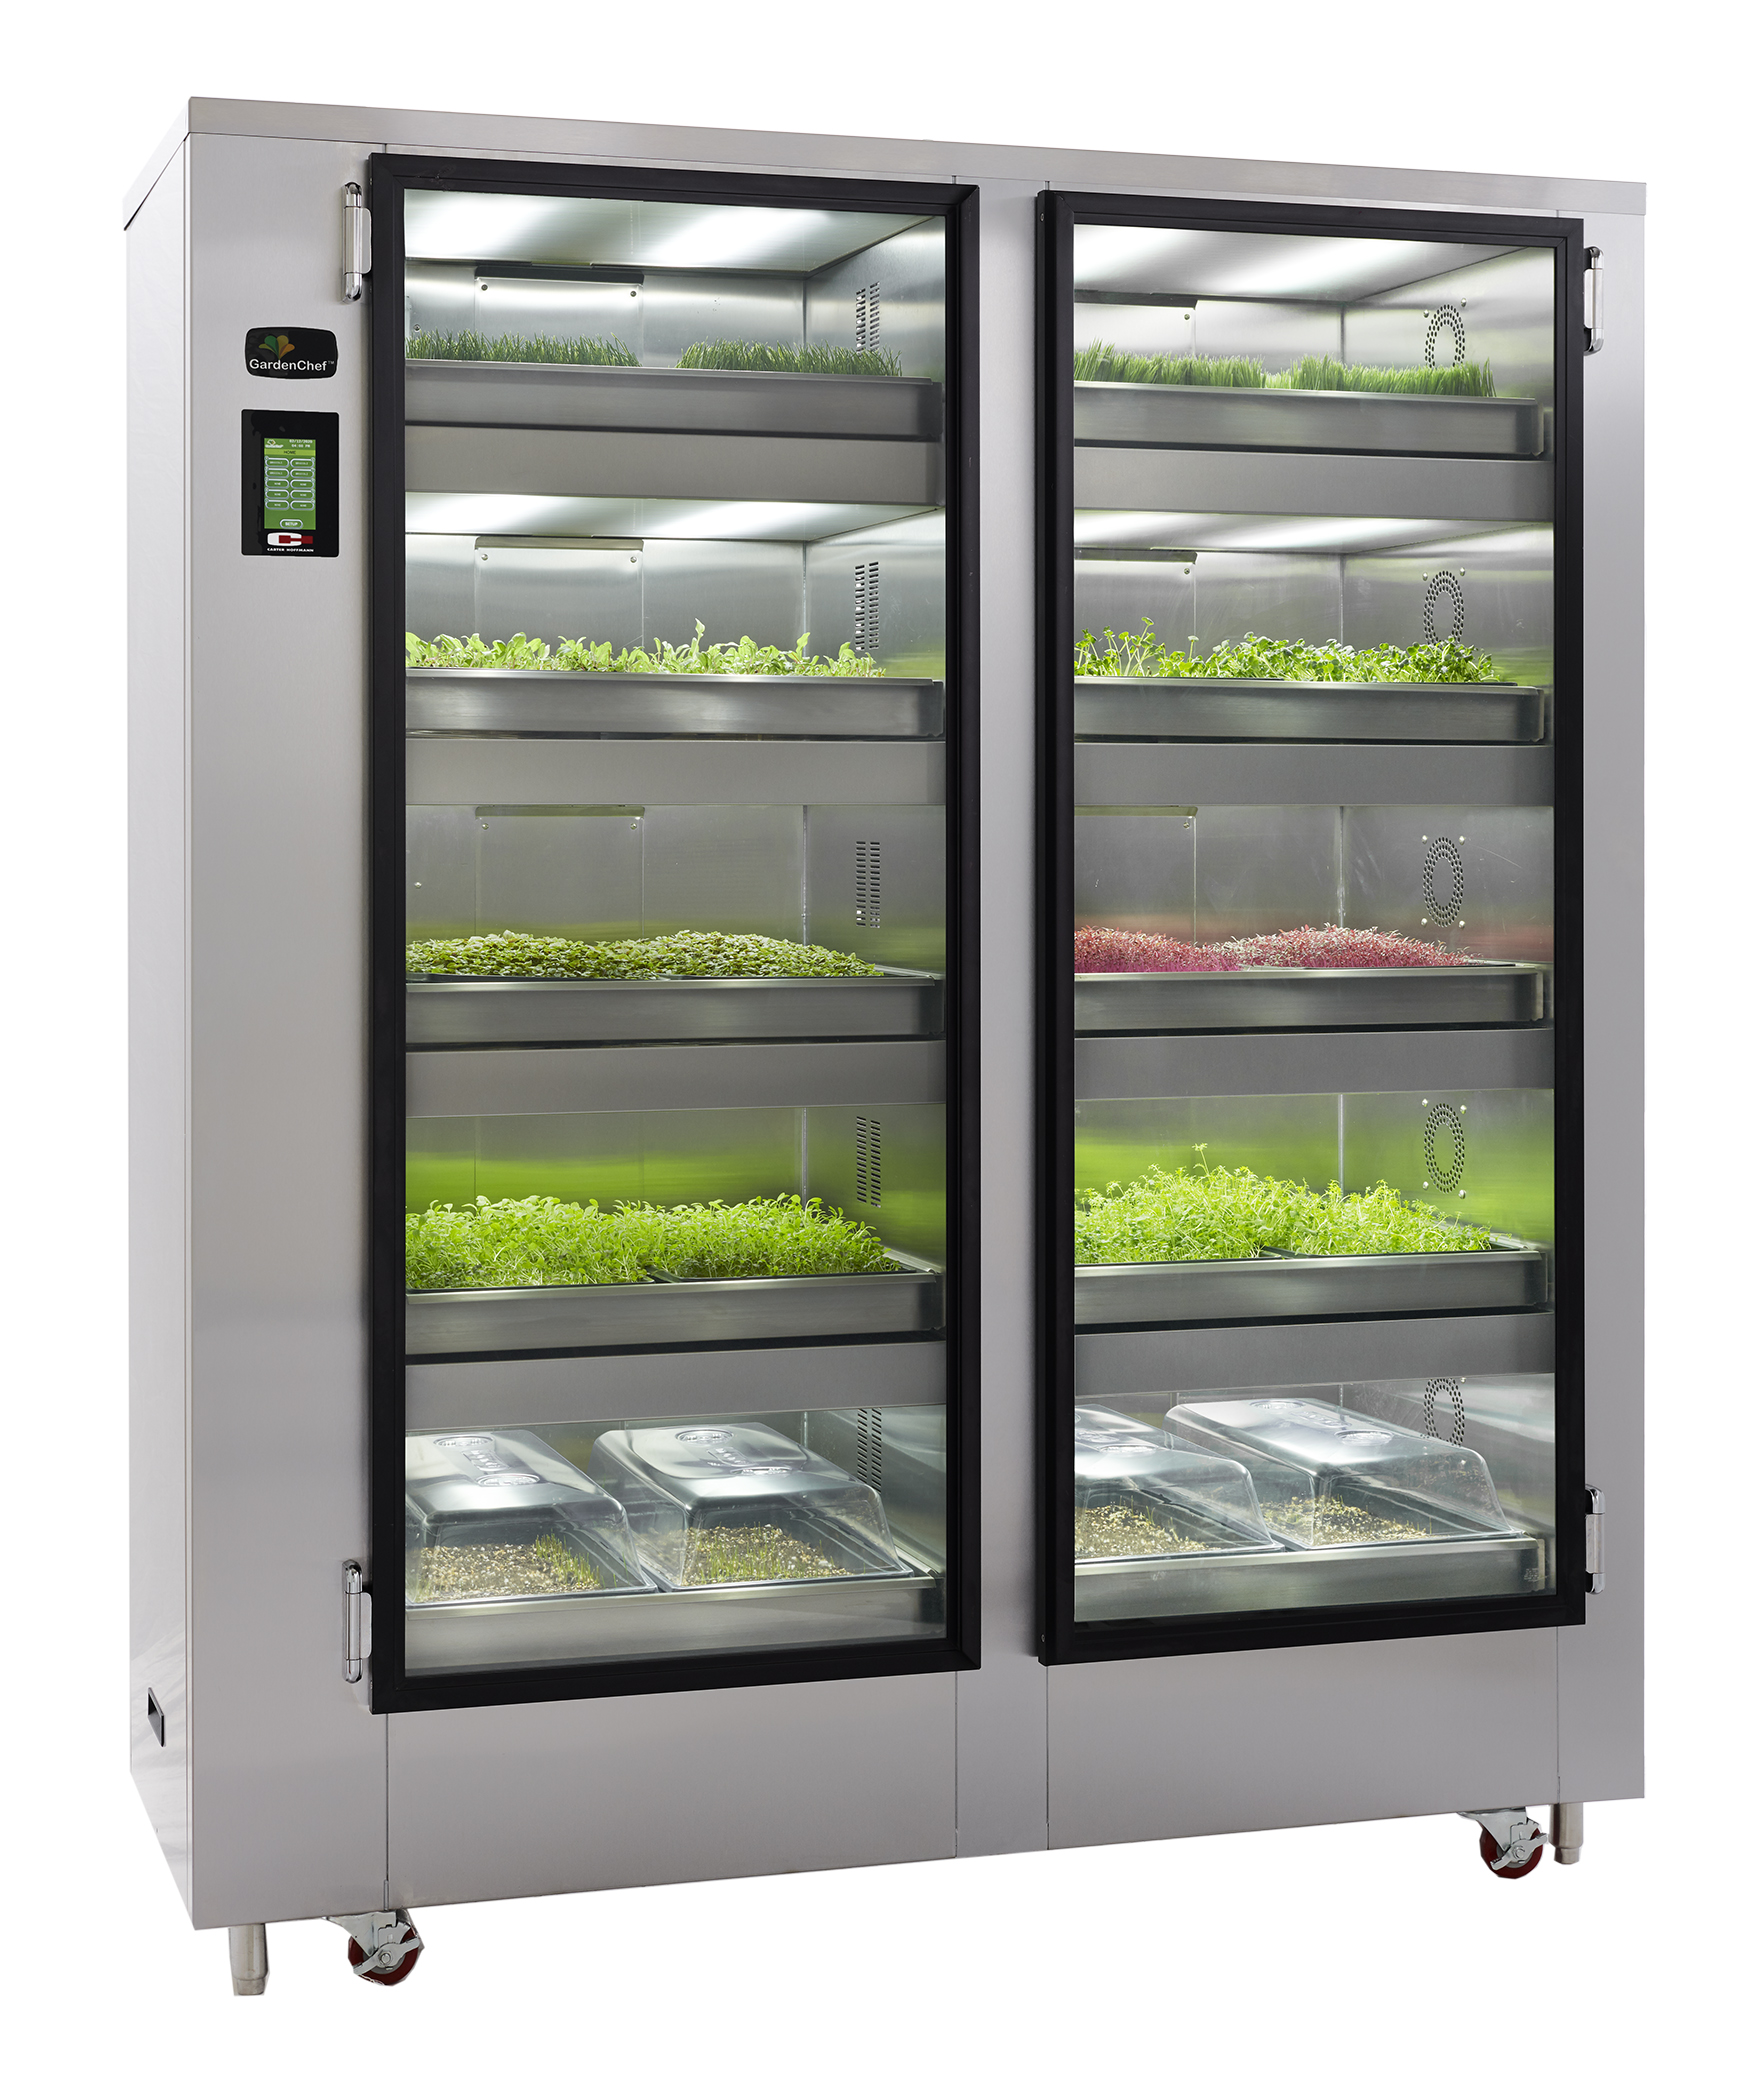 Carter-Hoffmann GC52 cabinet, growing